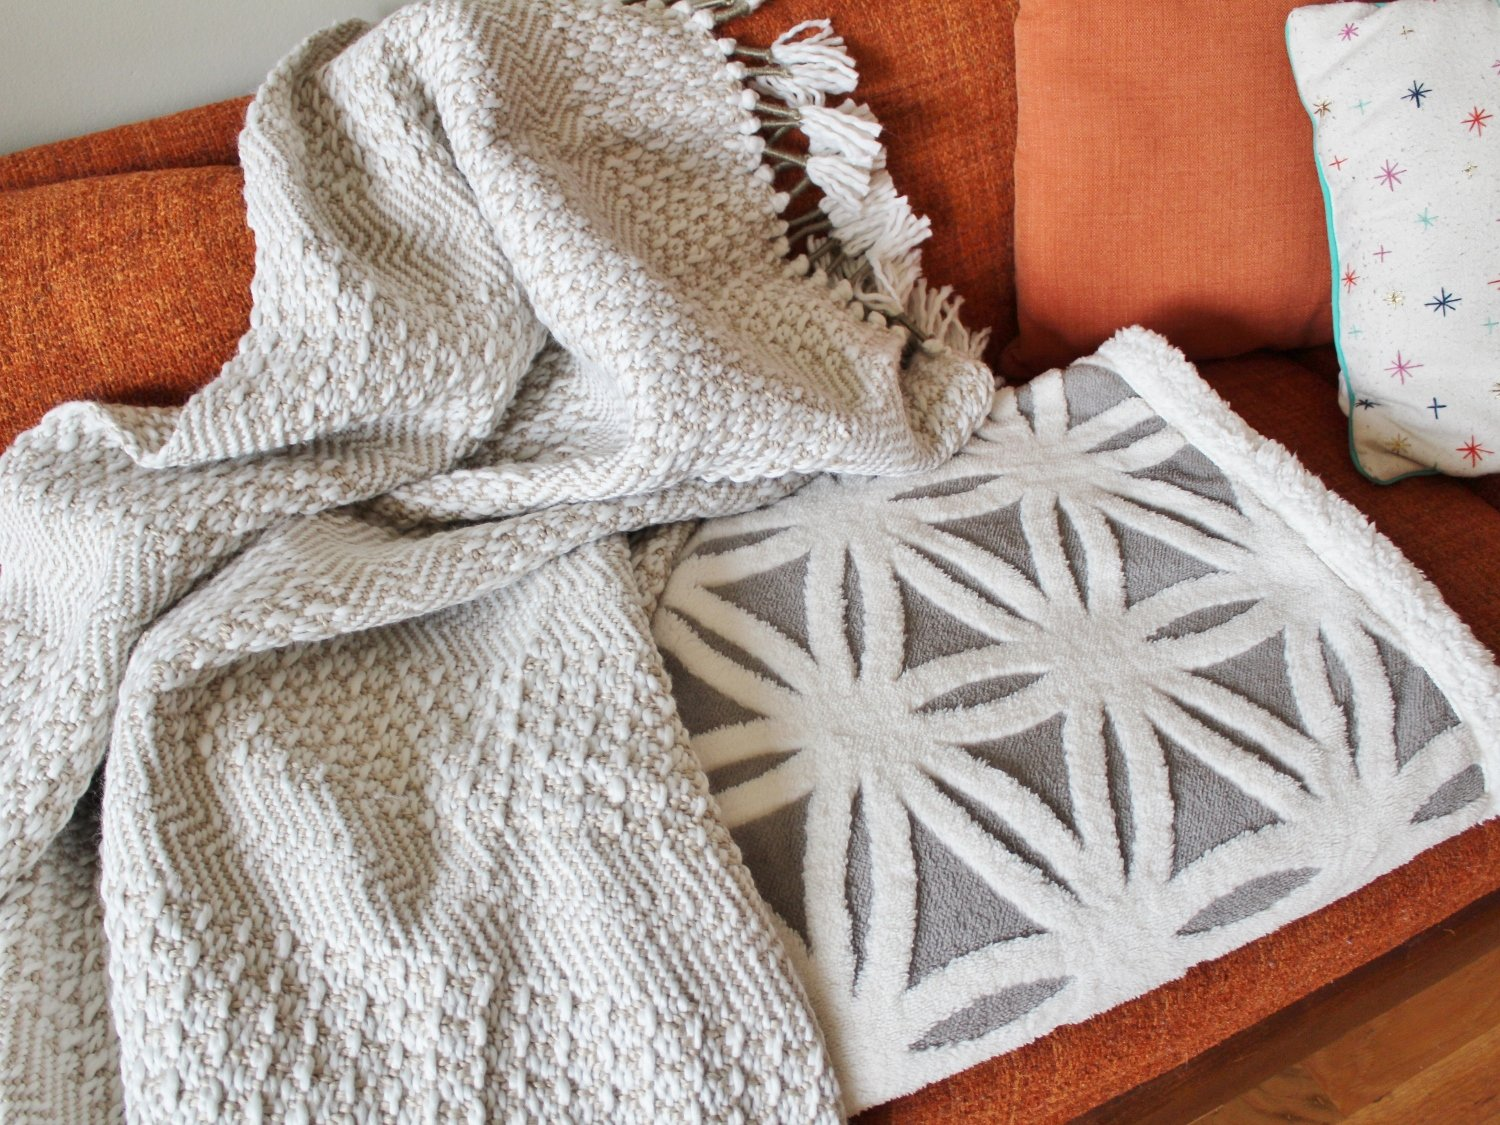 Cozy modern throw blankets on orange sofa